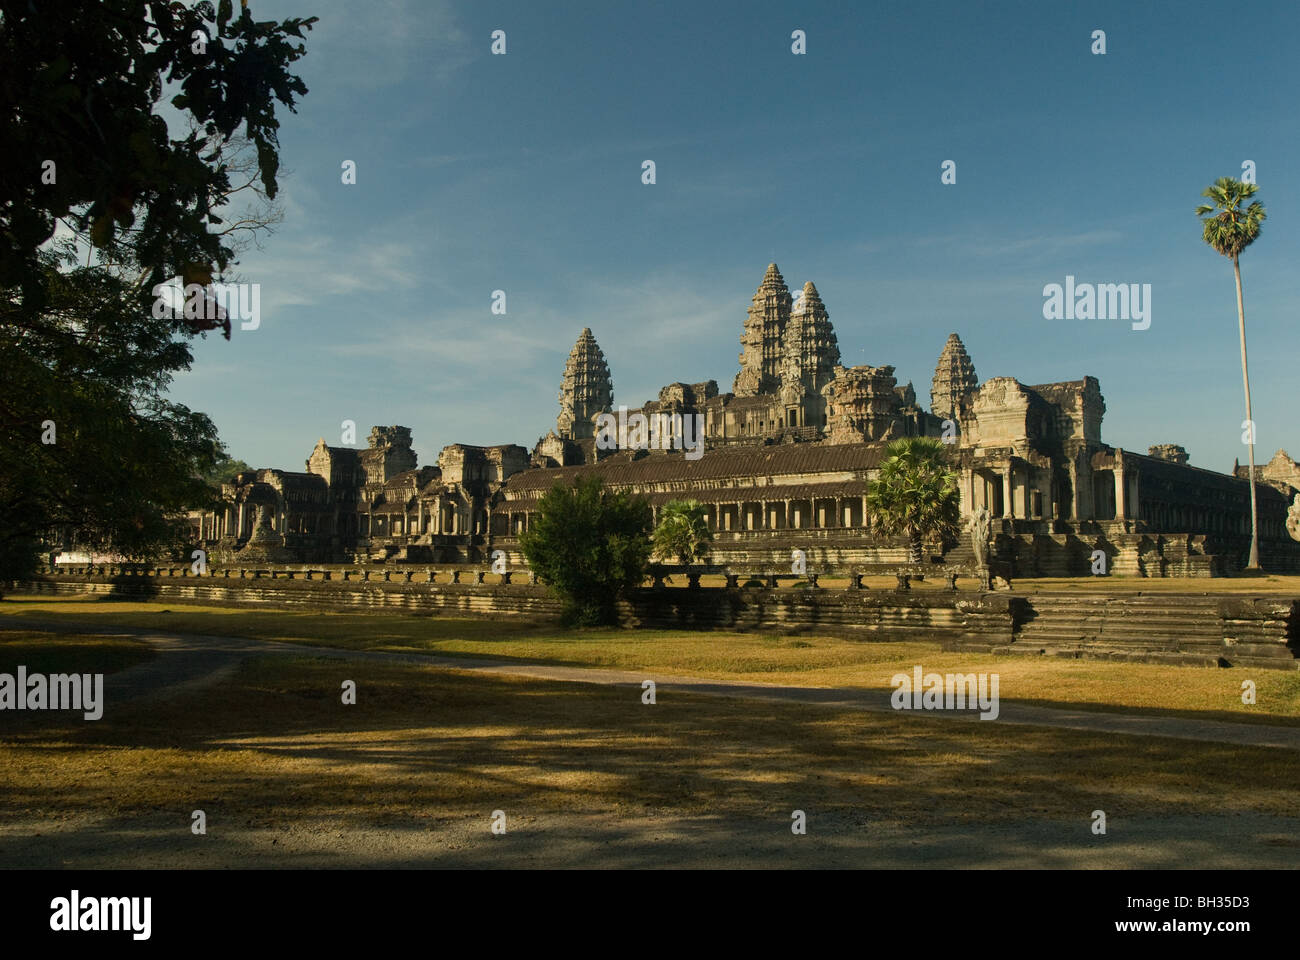 angkor-wat-in-the-morning-light-BH35D3.j